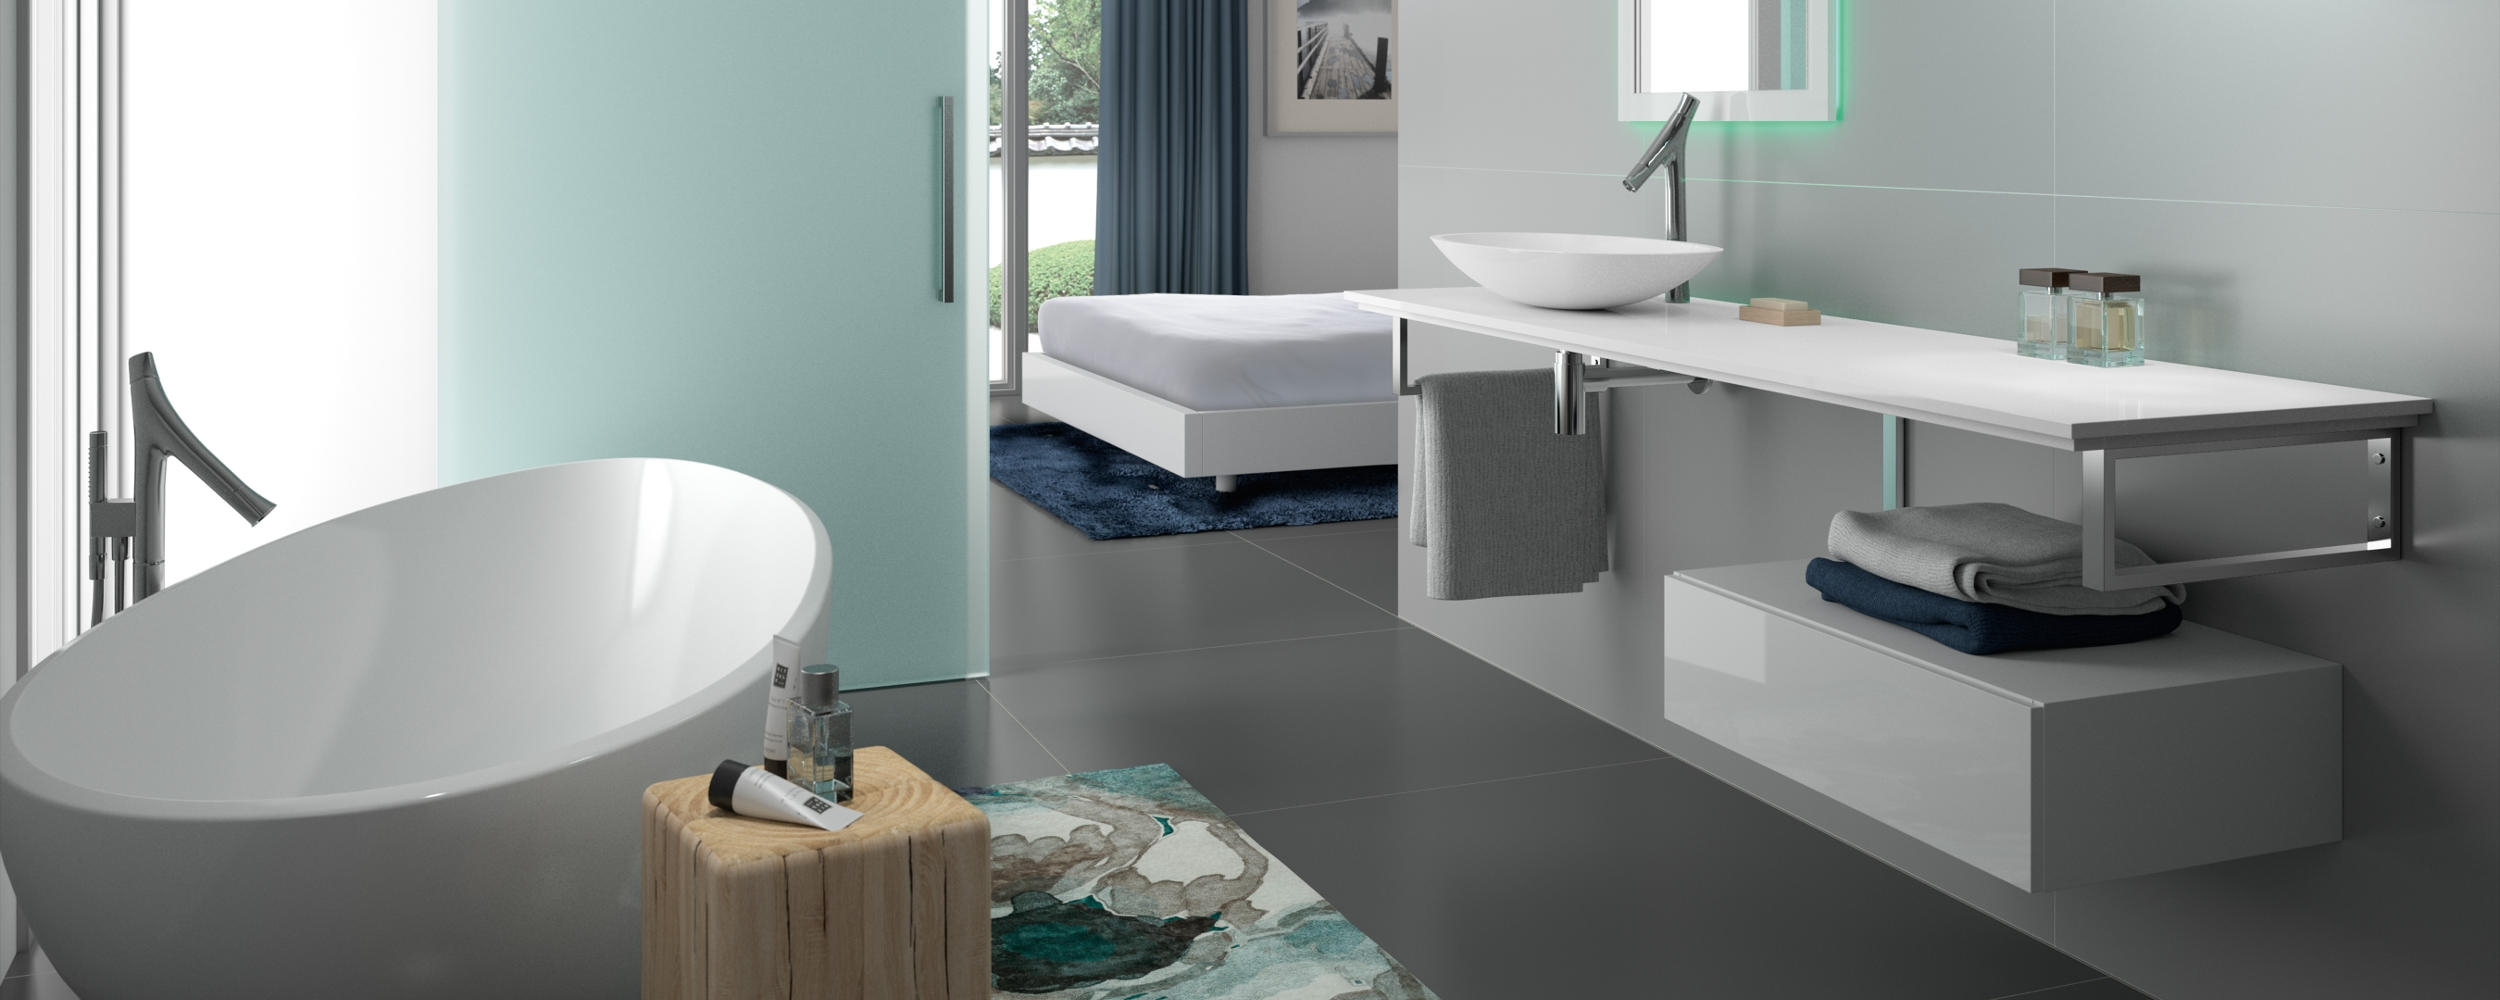 looking for a modern bathroom design in scotland